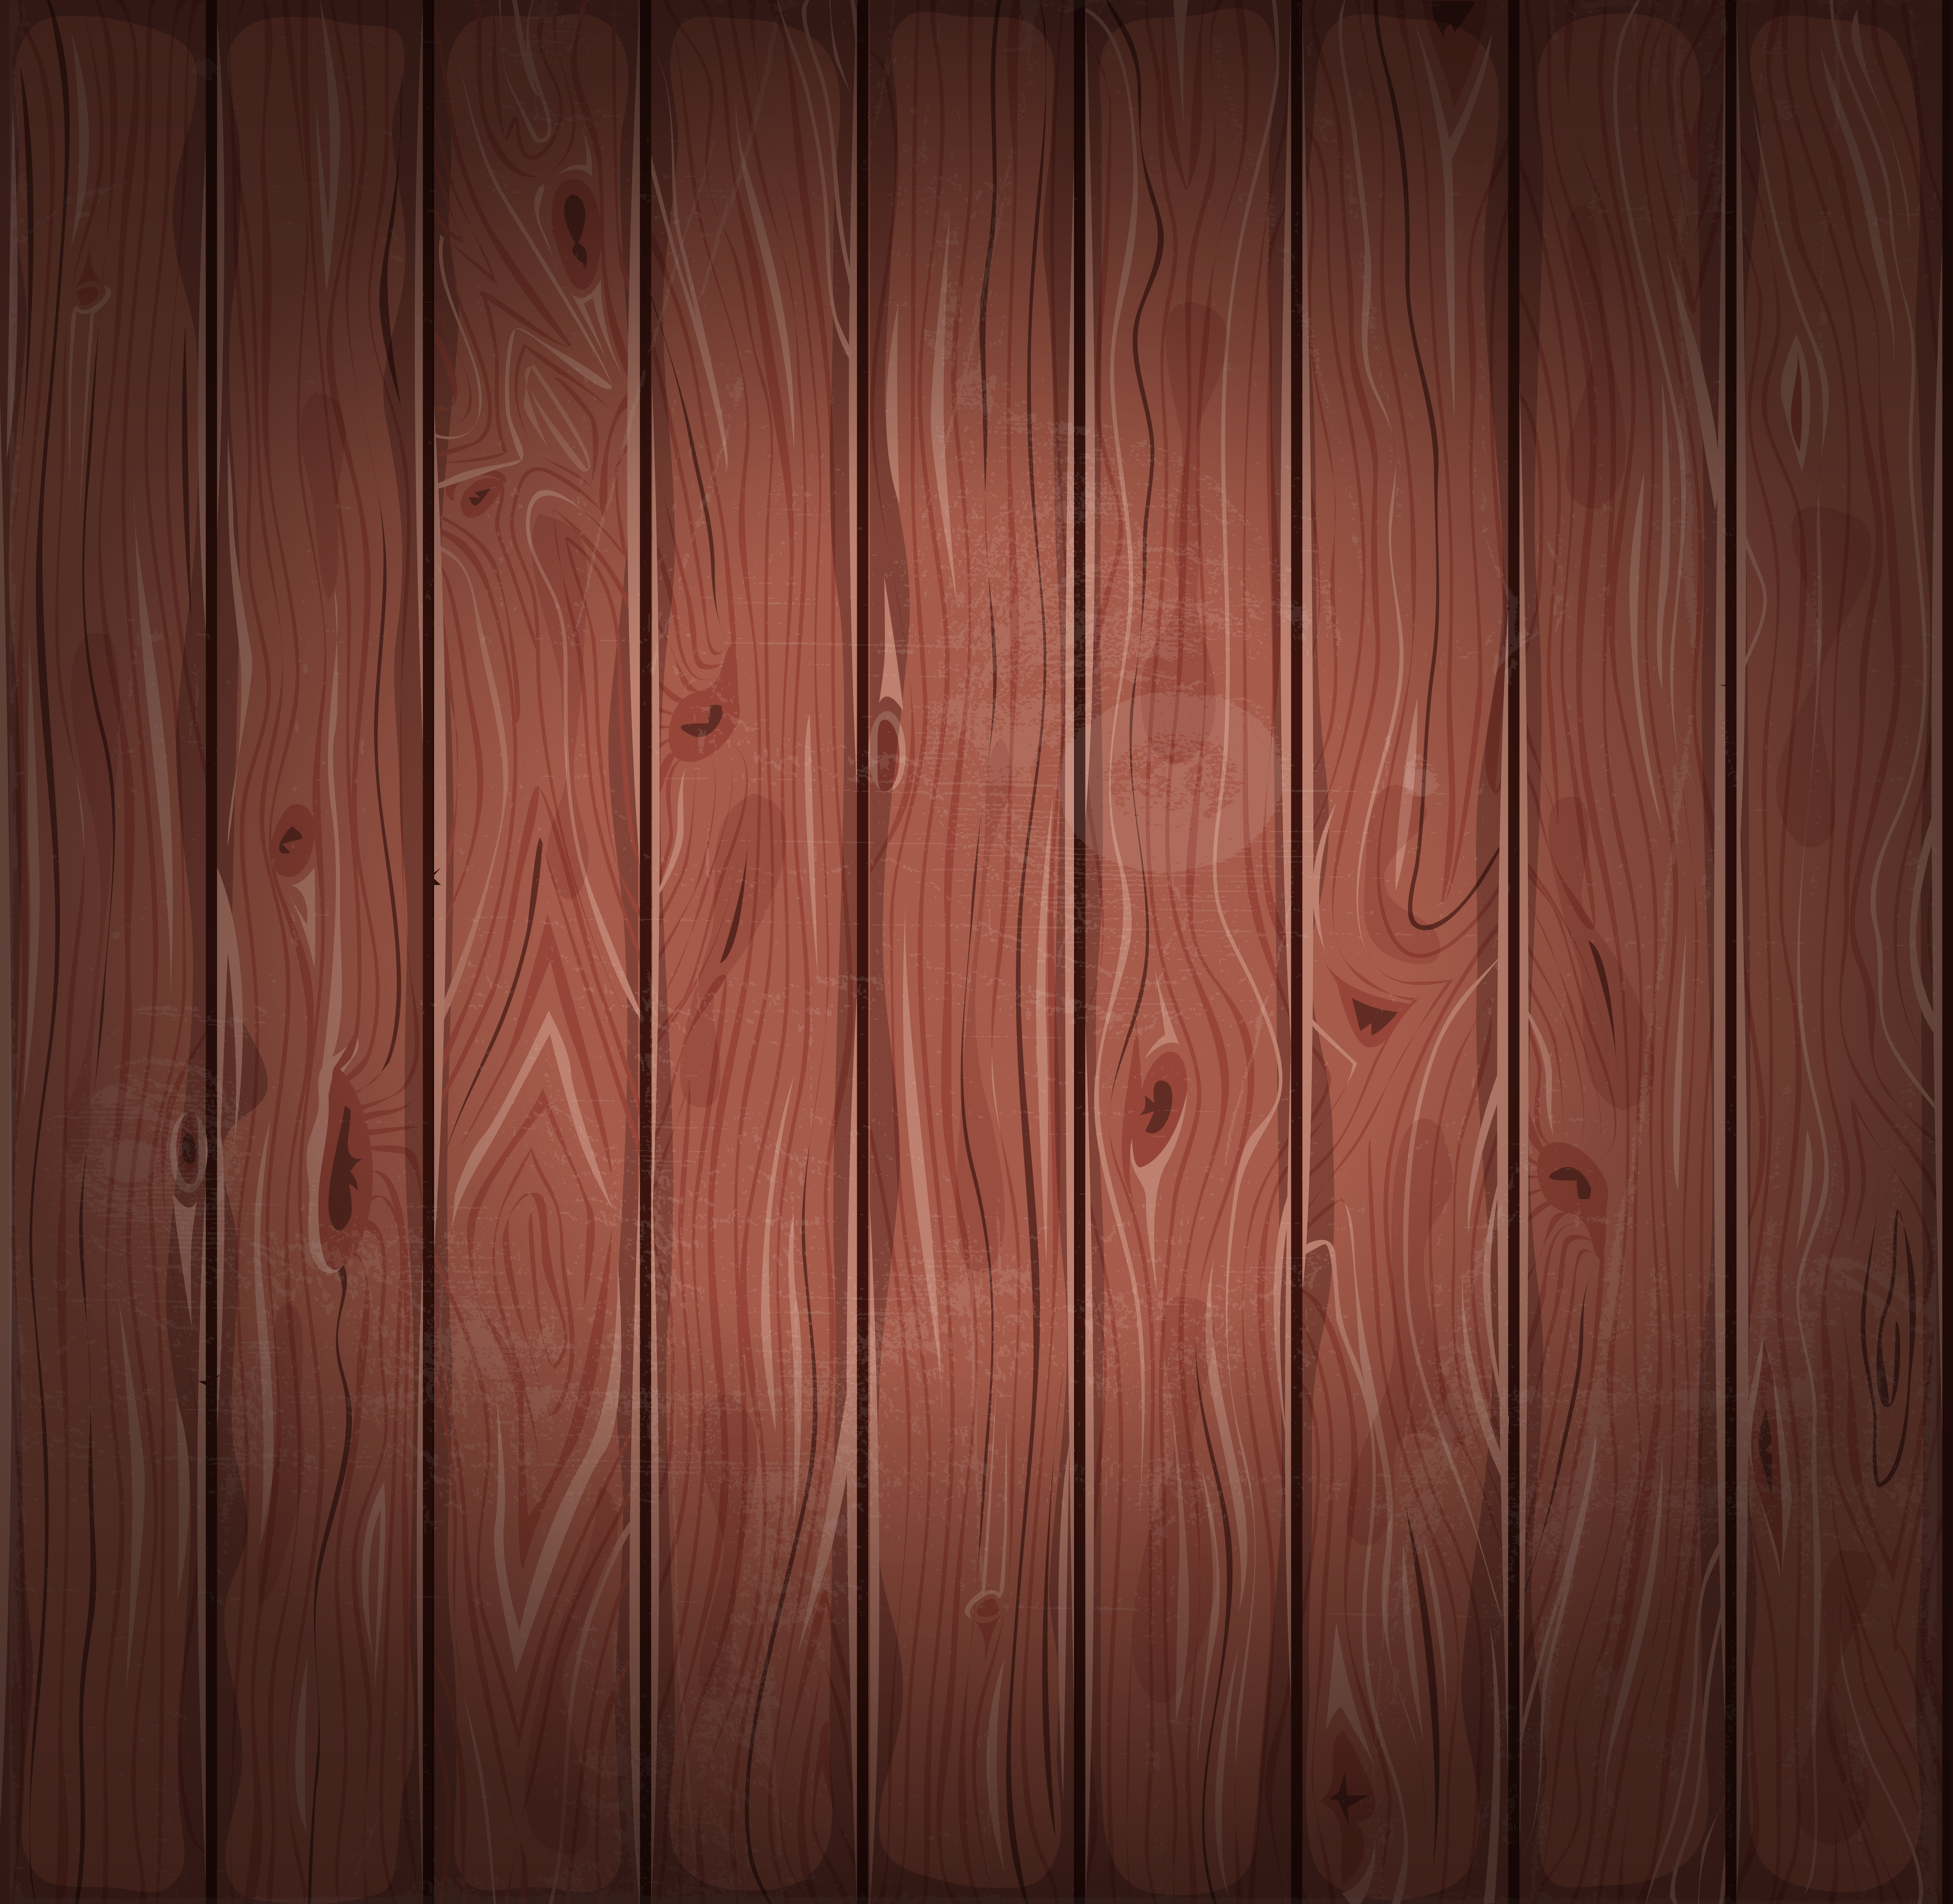 Wood Patterns Background Download Free Vector Art Stock Graphics